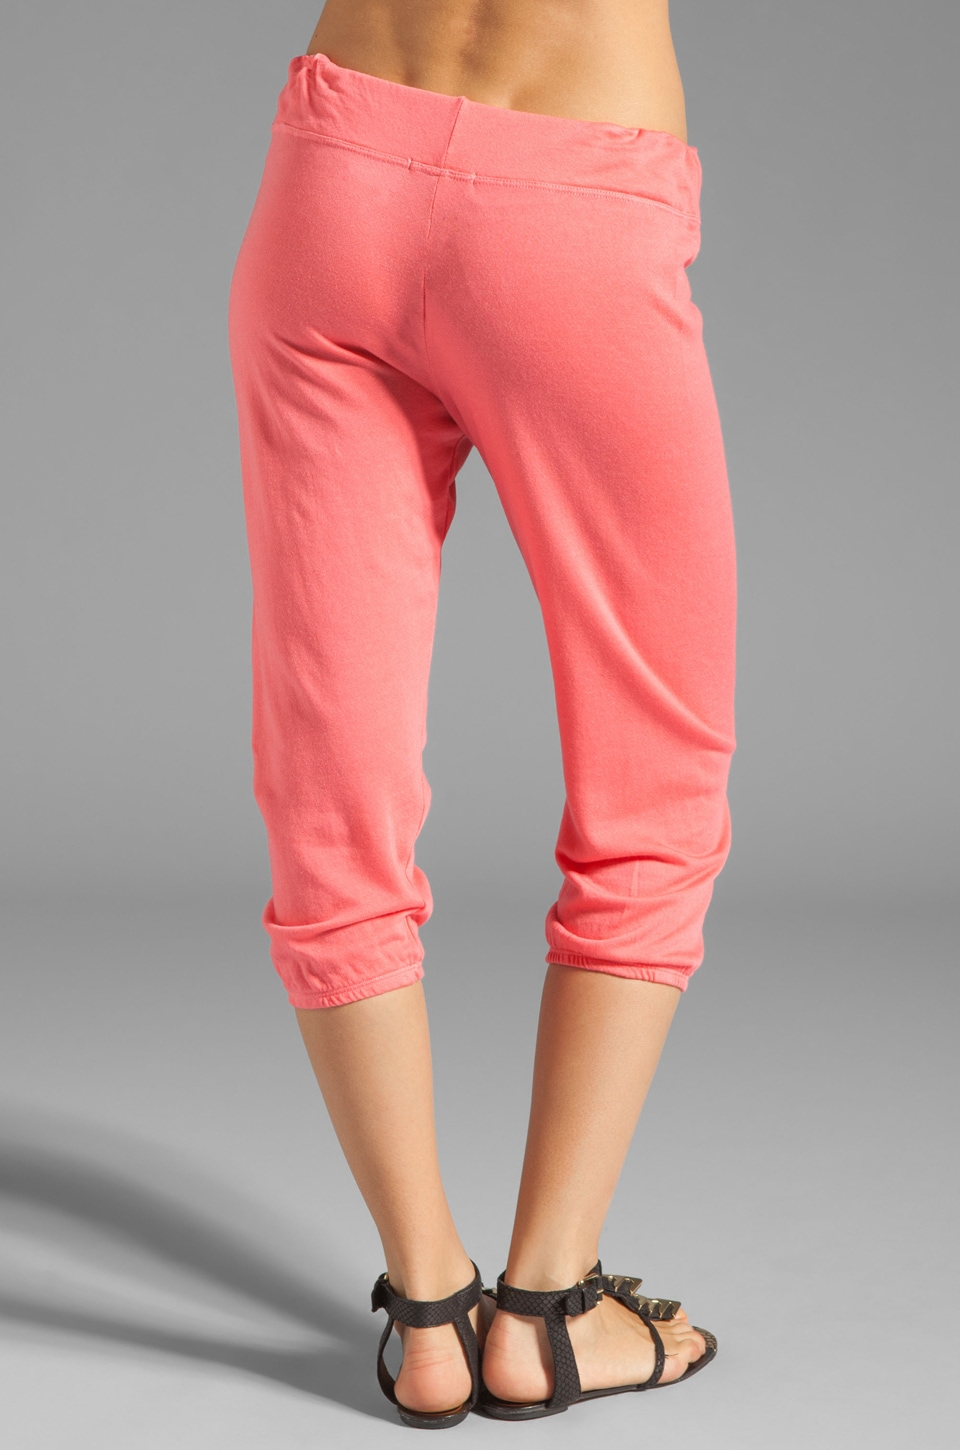 SUNDRY Light Terry Capri Pant in Hibiscus